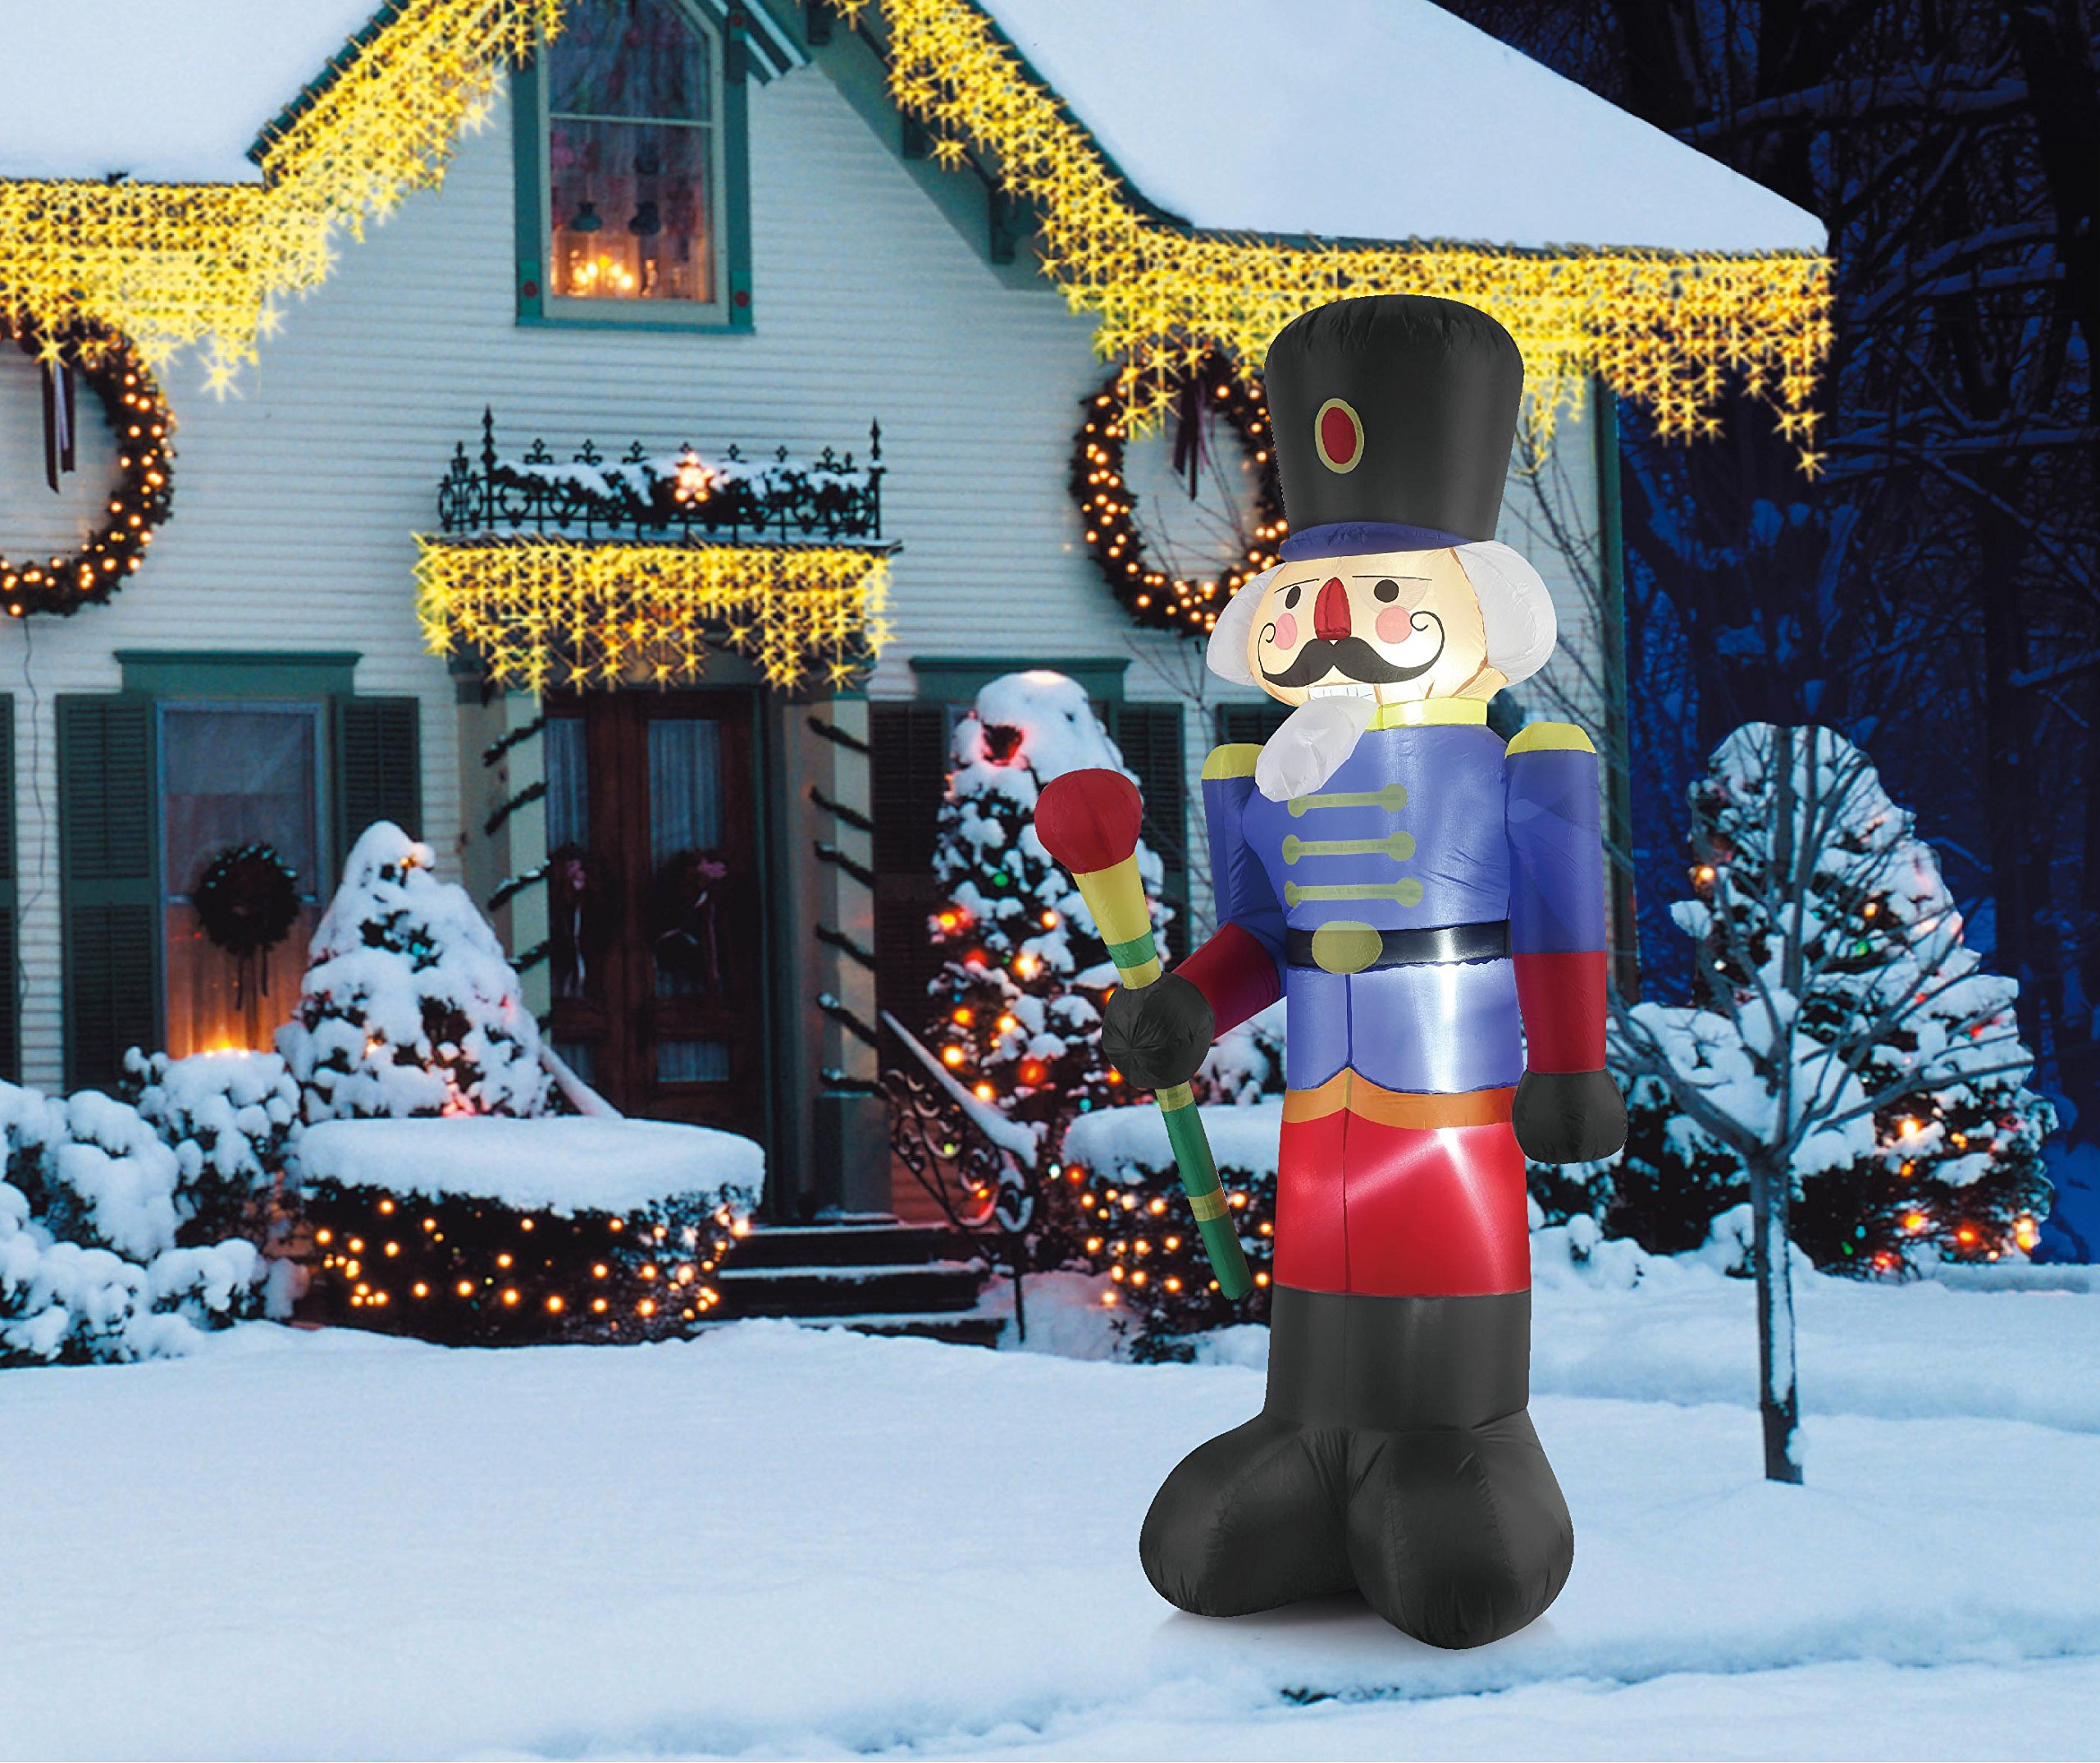 all you need to do is attach your blower fan to your christmas nutcracker inflatable and plug it in and your inflatable nutcracker will be ready to spread - Outdoor Christmas Inflatables